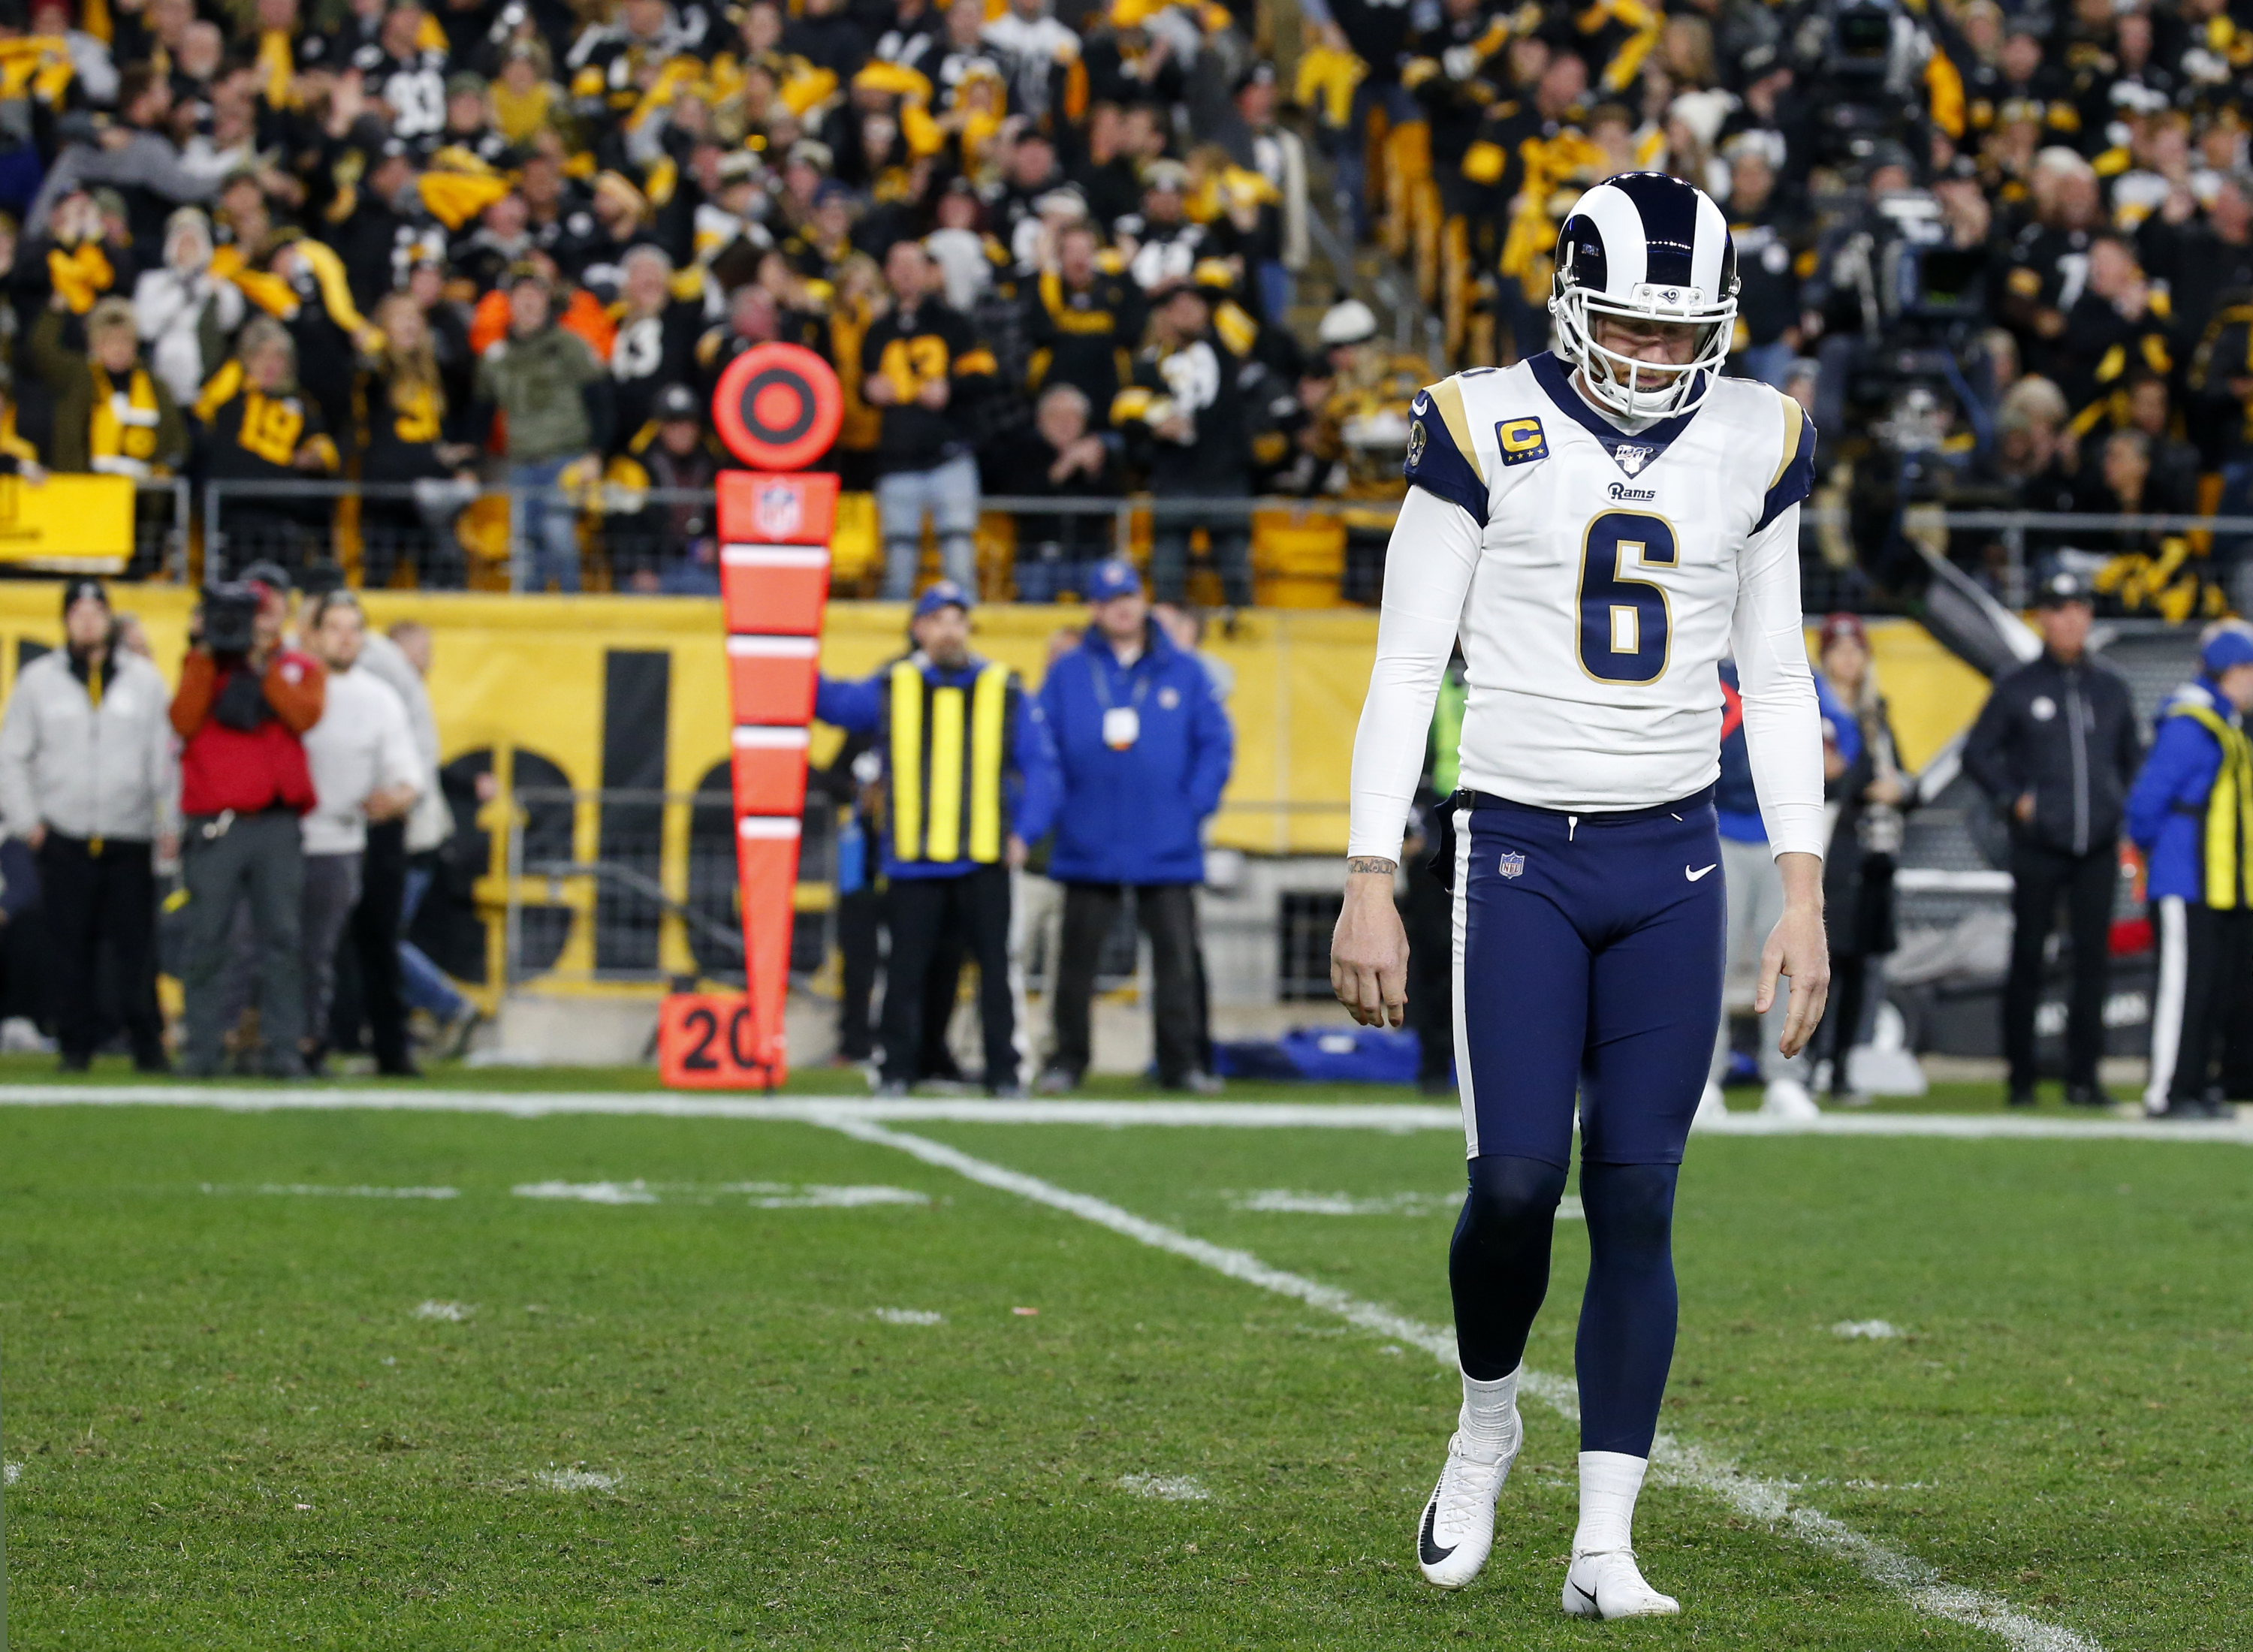 Los Angeles Rams P Johnny Hekker walks off the field at Heinz Field after throwing an interception in the second half against the Pittsburgh Steelers in Week 10, Nov. 10, 2019.